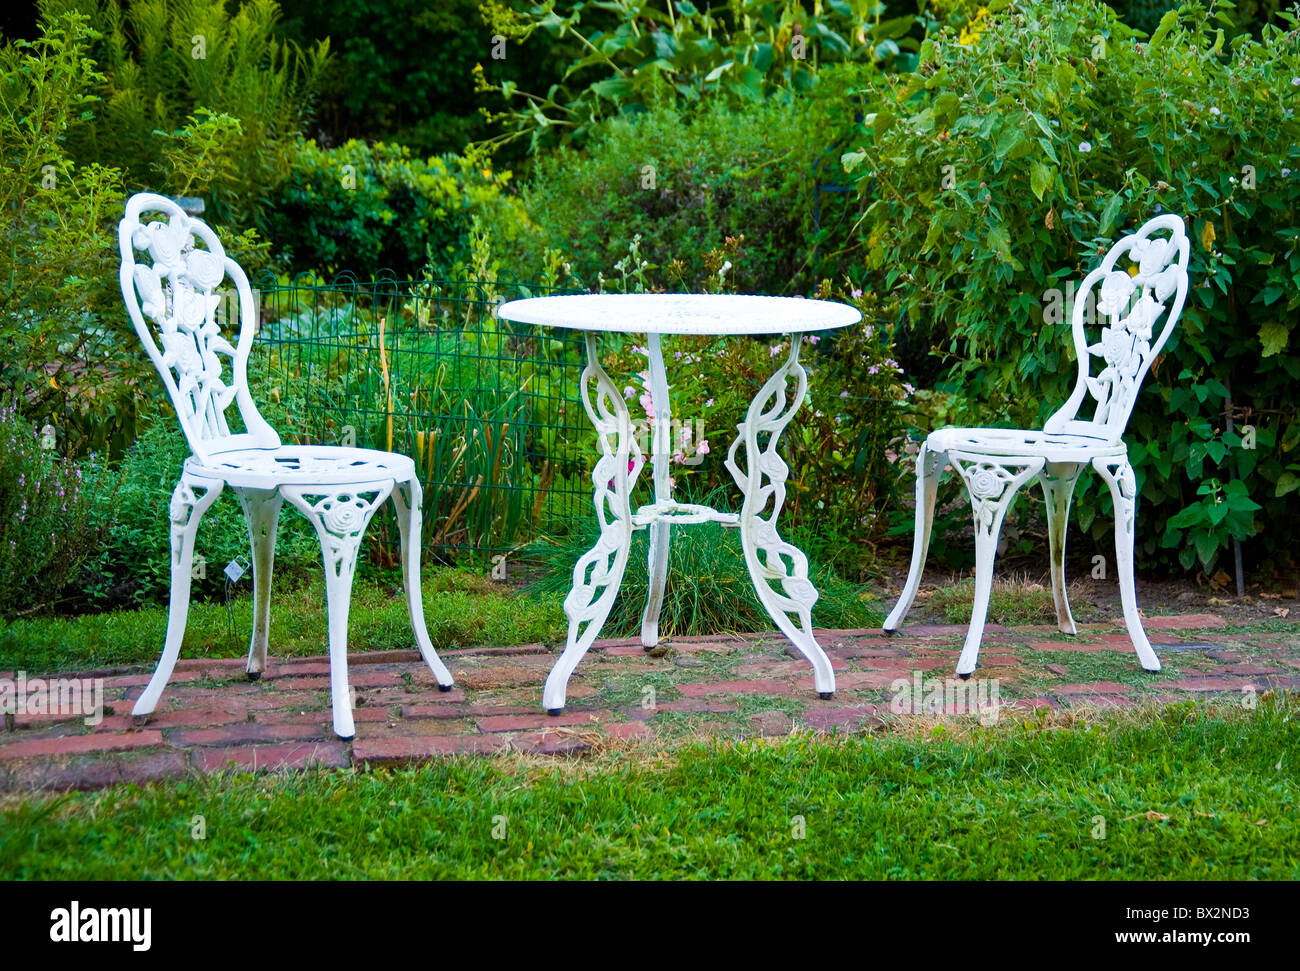 Backyard garden furniture cast iron painted white from ...